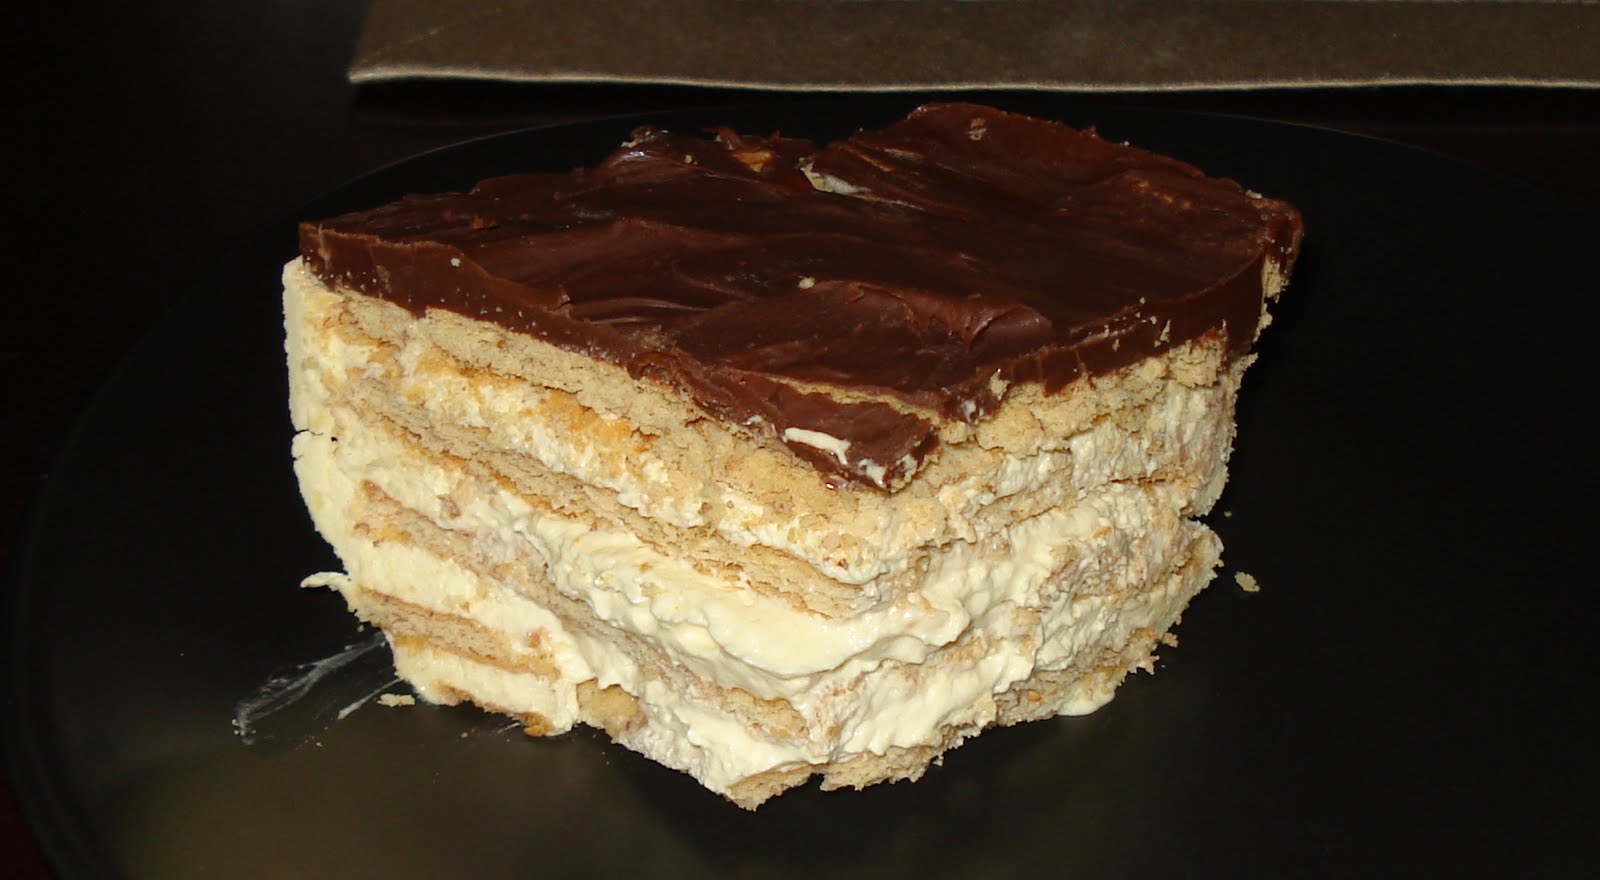 From my Kitchen: No Bake Chocolate Vanilla Eclair Cake